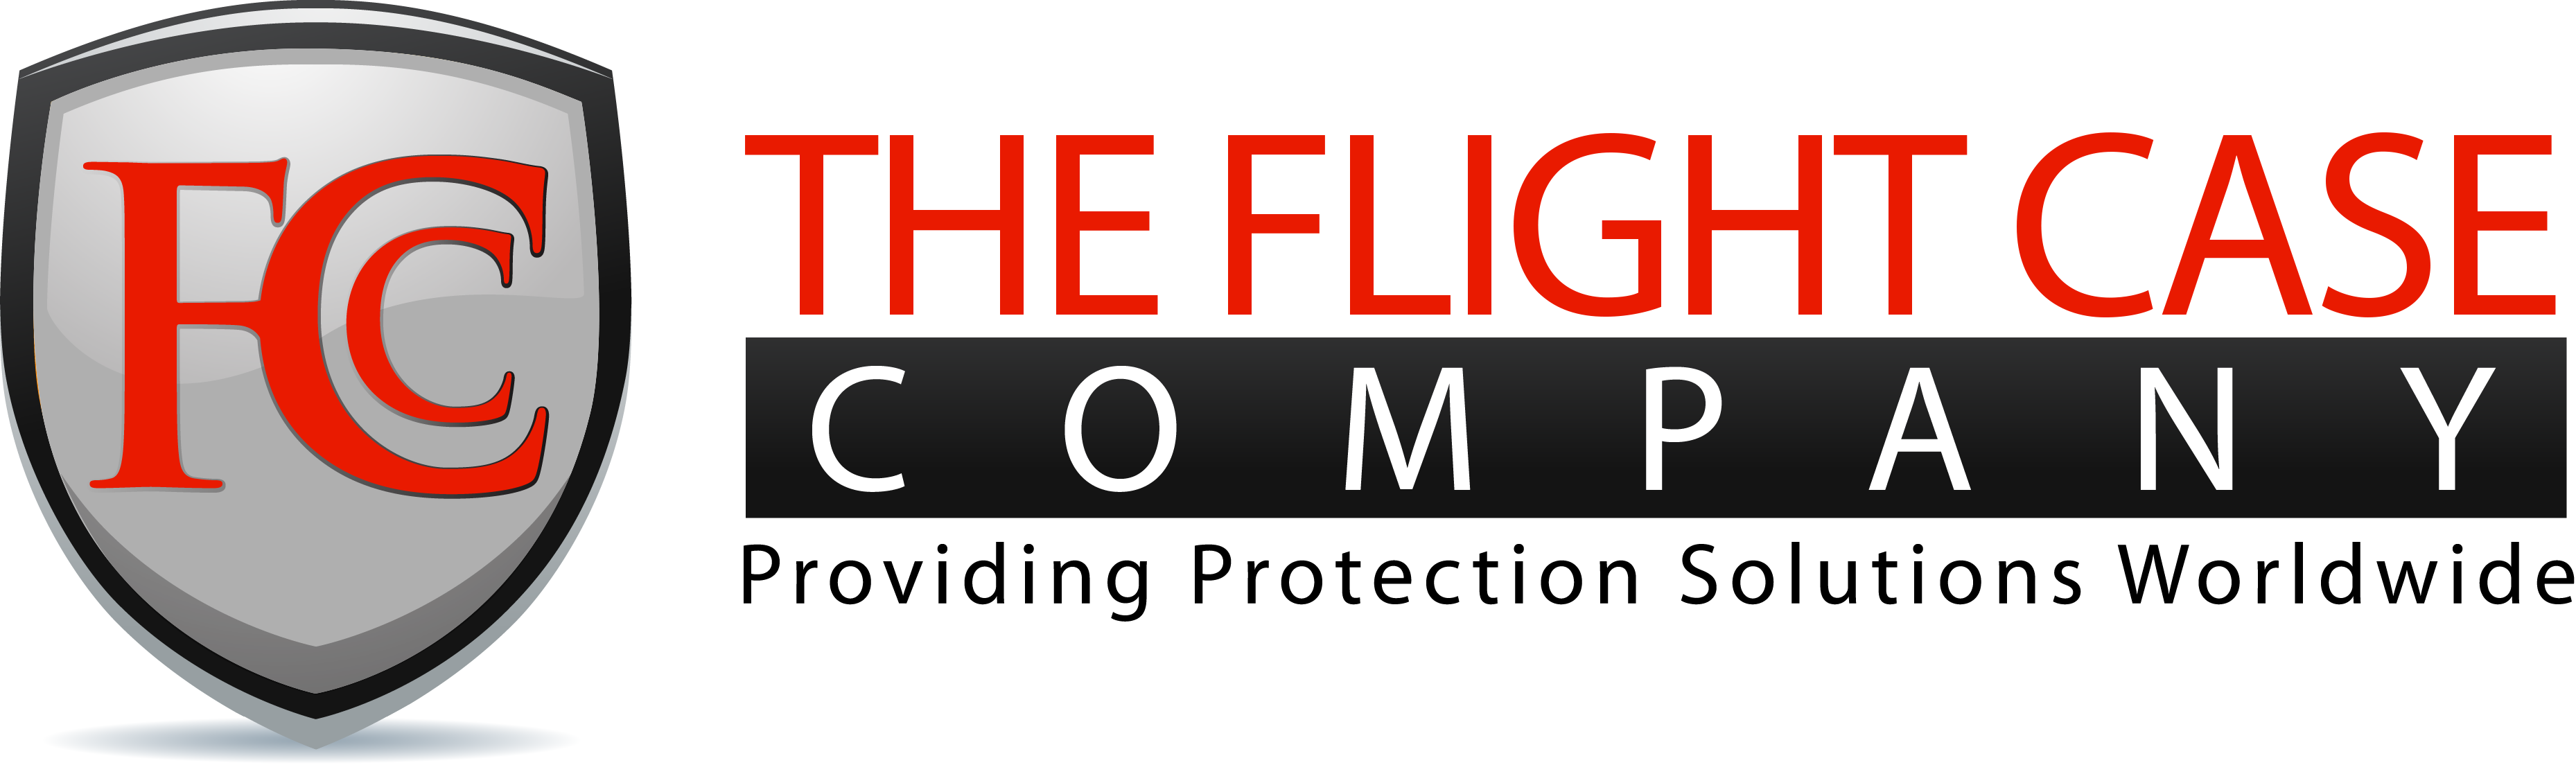 The Flight Case Company